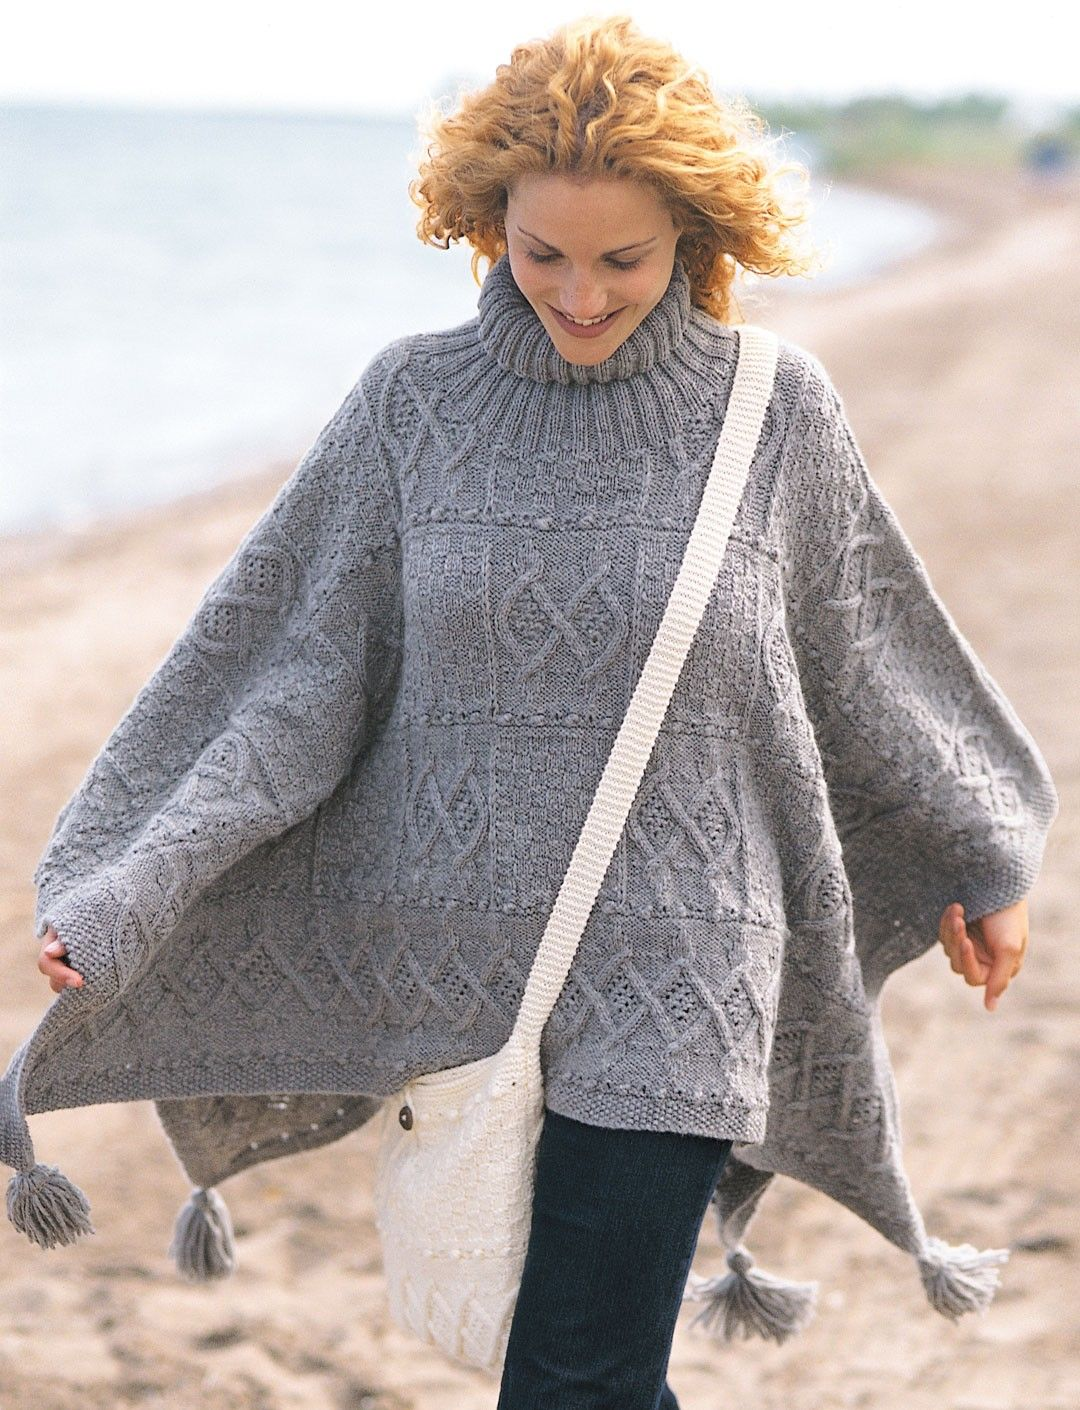 Yarnspirations patons blanket poncho and bag lots of free poncho patterns hereee knitting pattern for blanket poncho and bag bankloansurffo Gallery